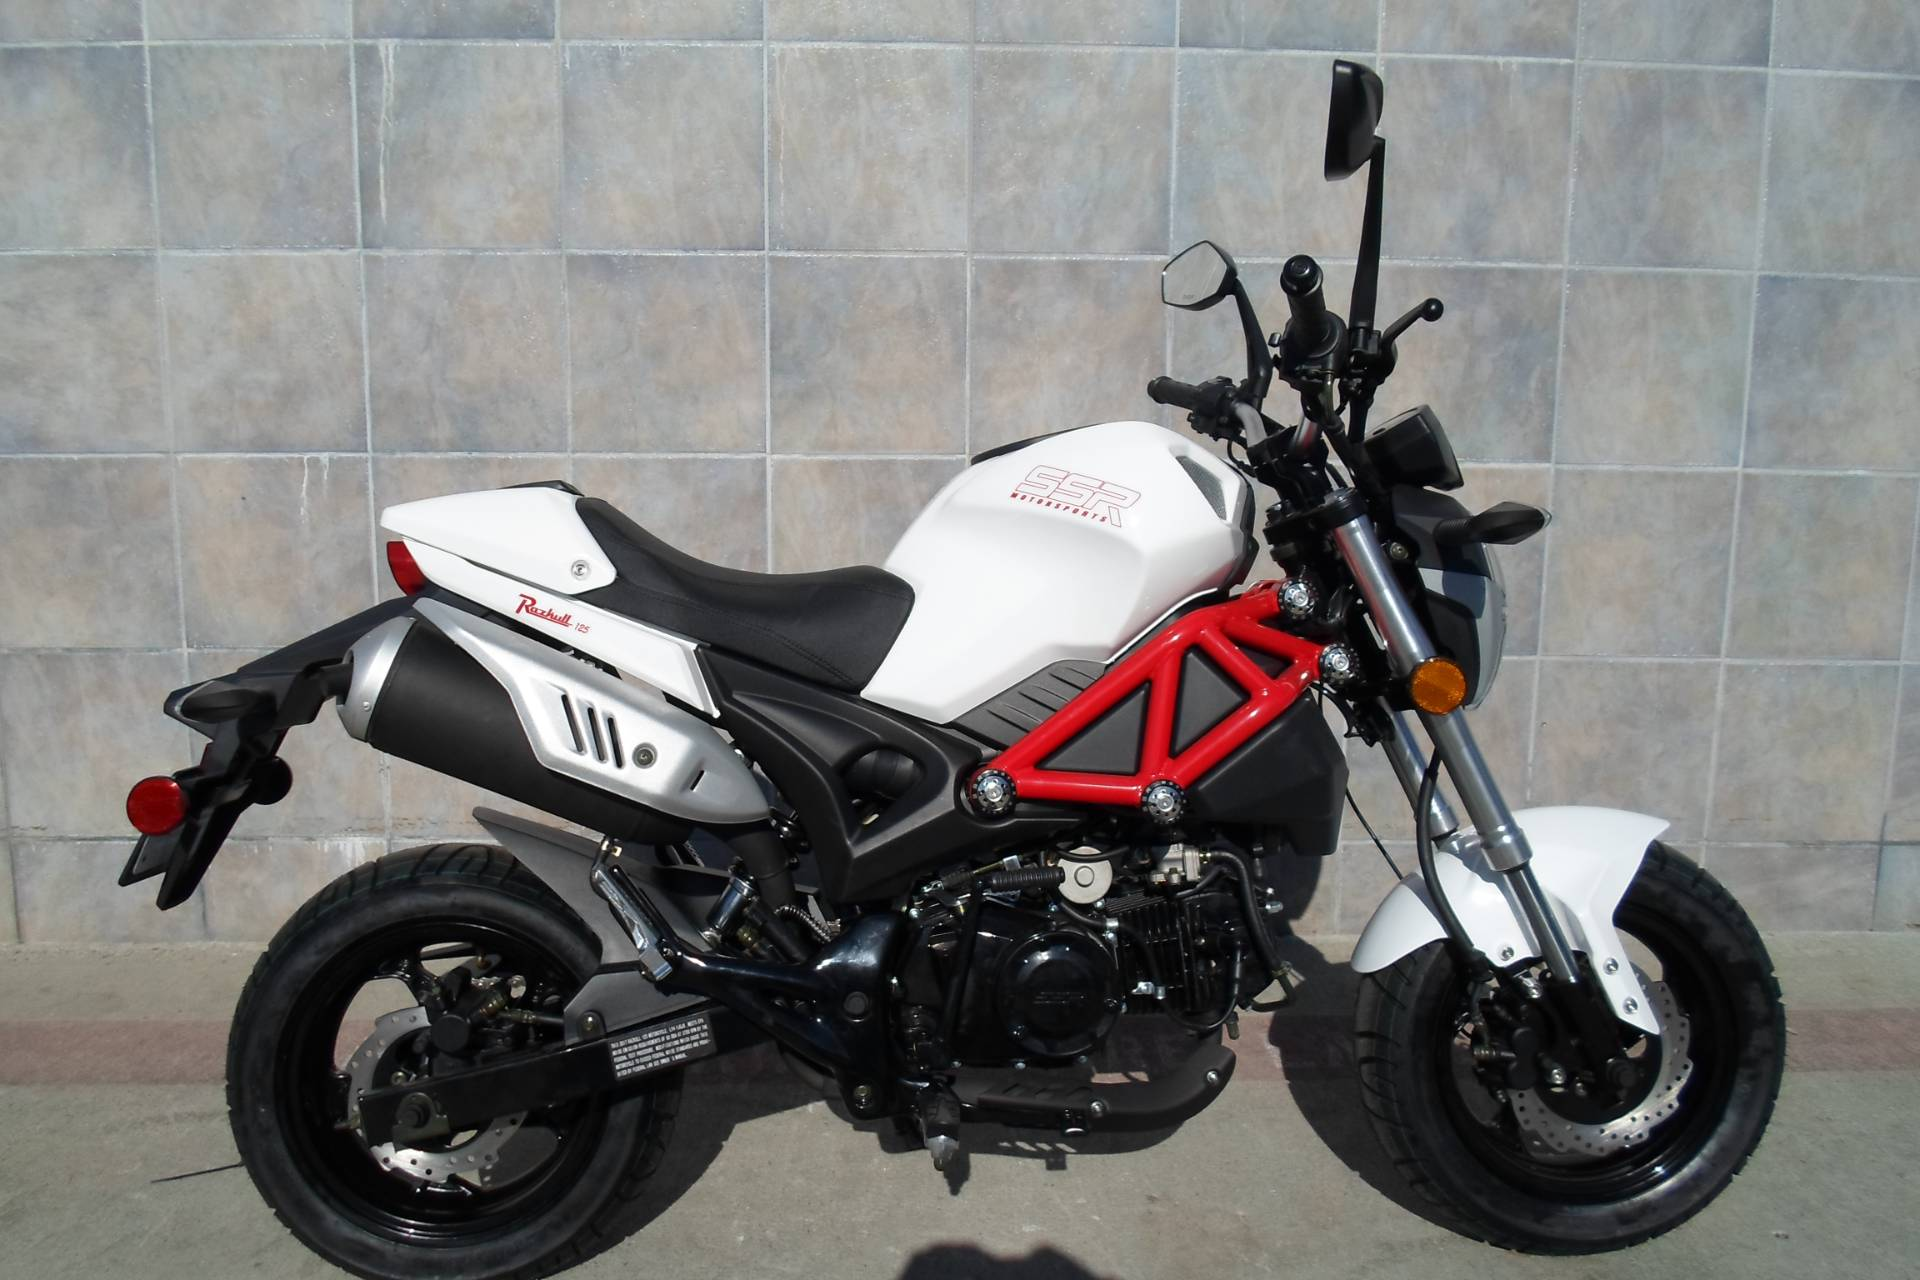 New Motorcycles For Sale San Marcos Ca >> New 2018 SSR Motorsports Razkull 125 Motorcycles in San Marcos, CA